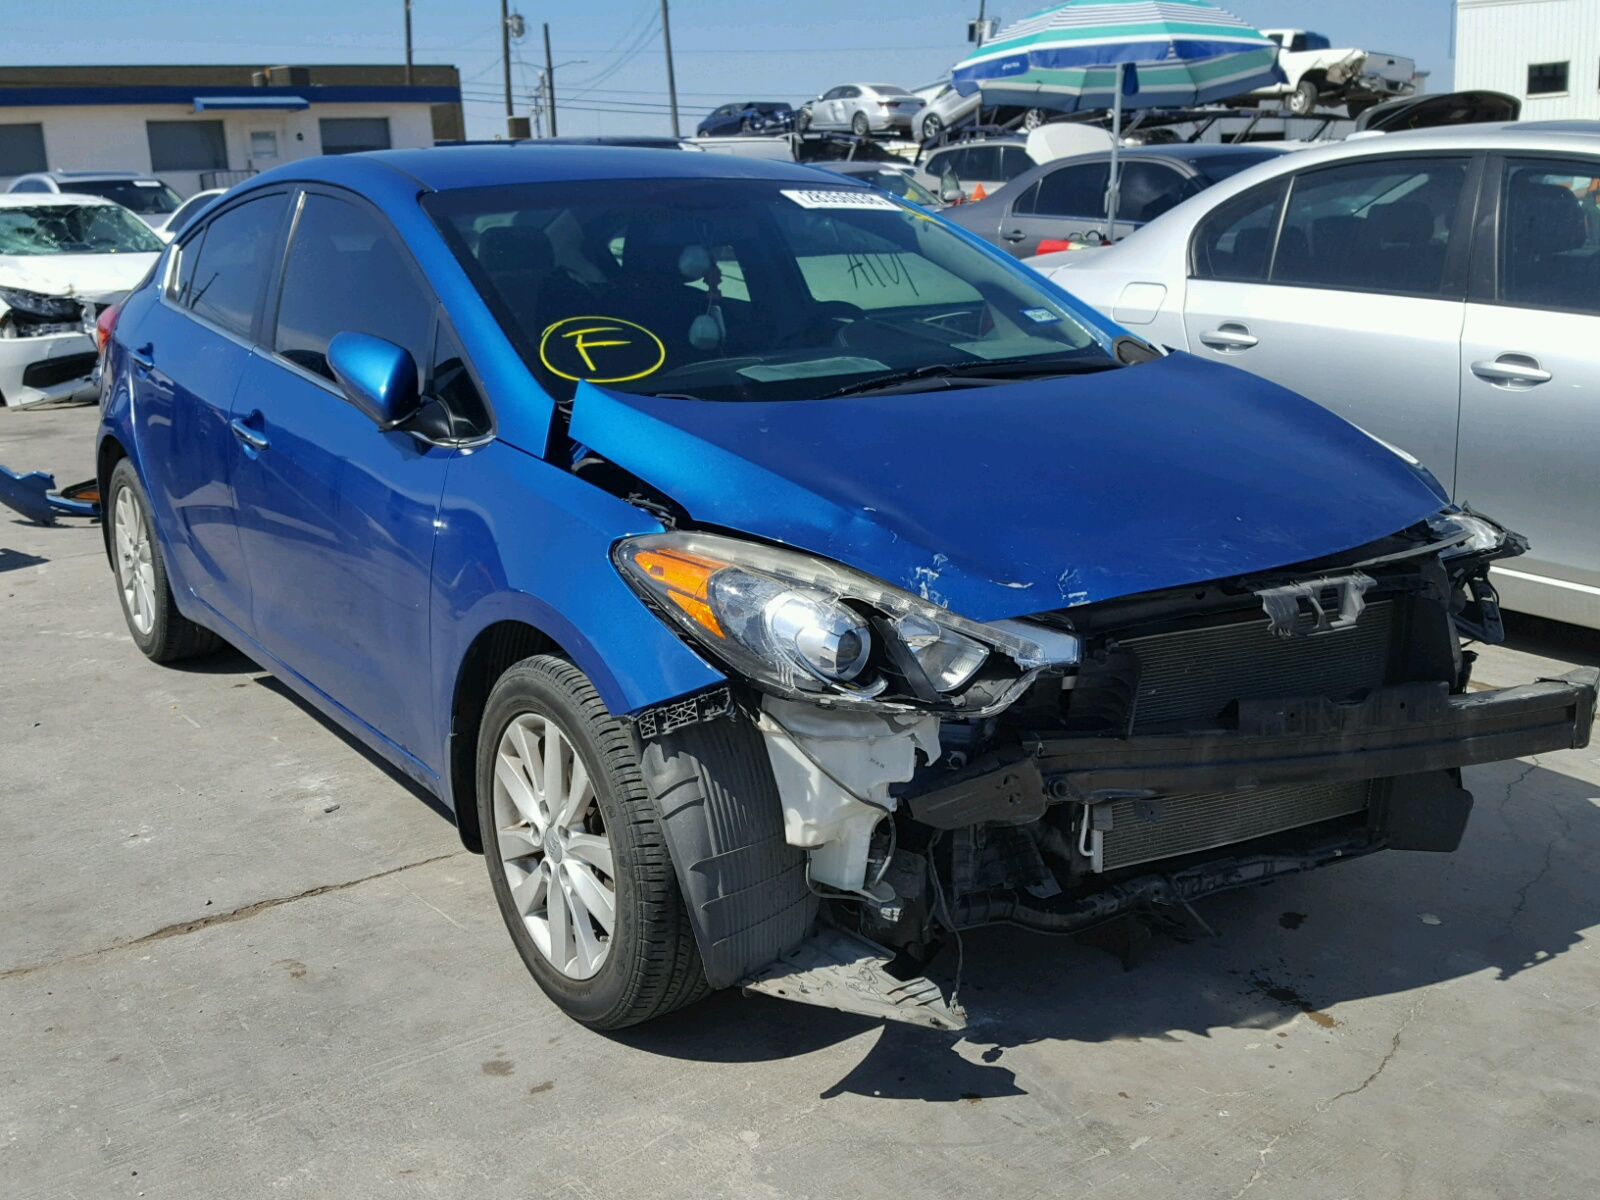 left red tx sale view auctions on carfinder copart auto vehicle kia en spectr title online dallas lot salvage new in